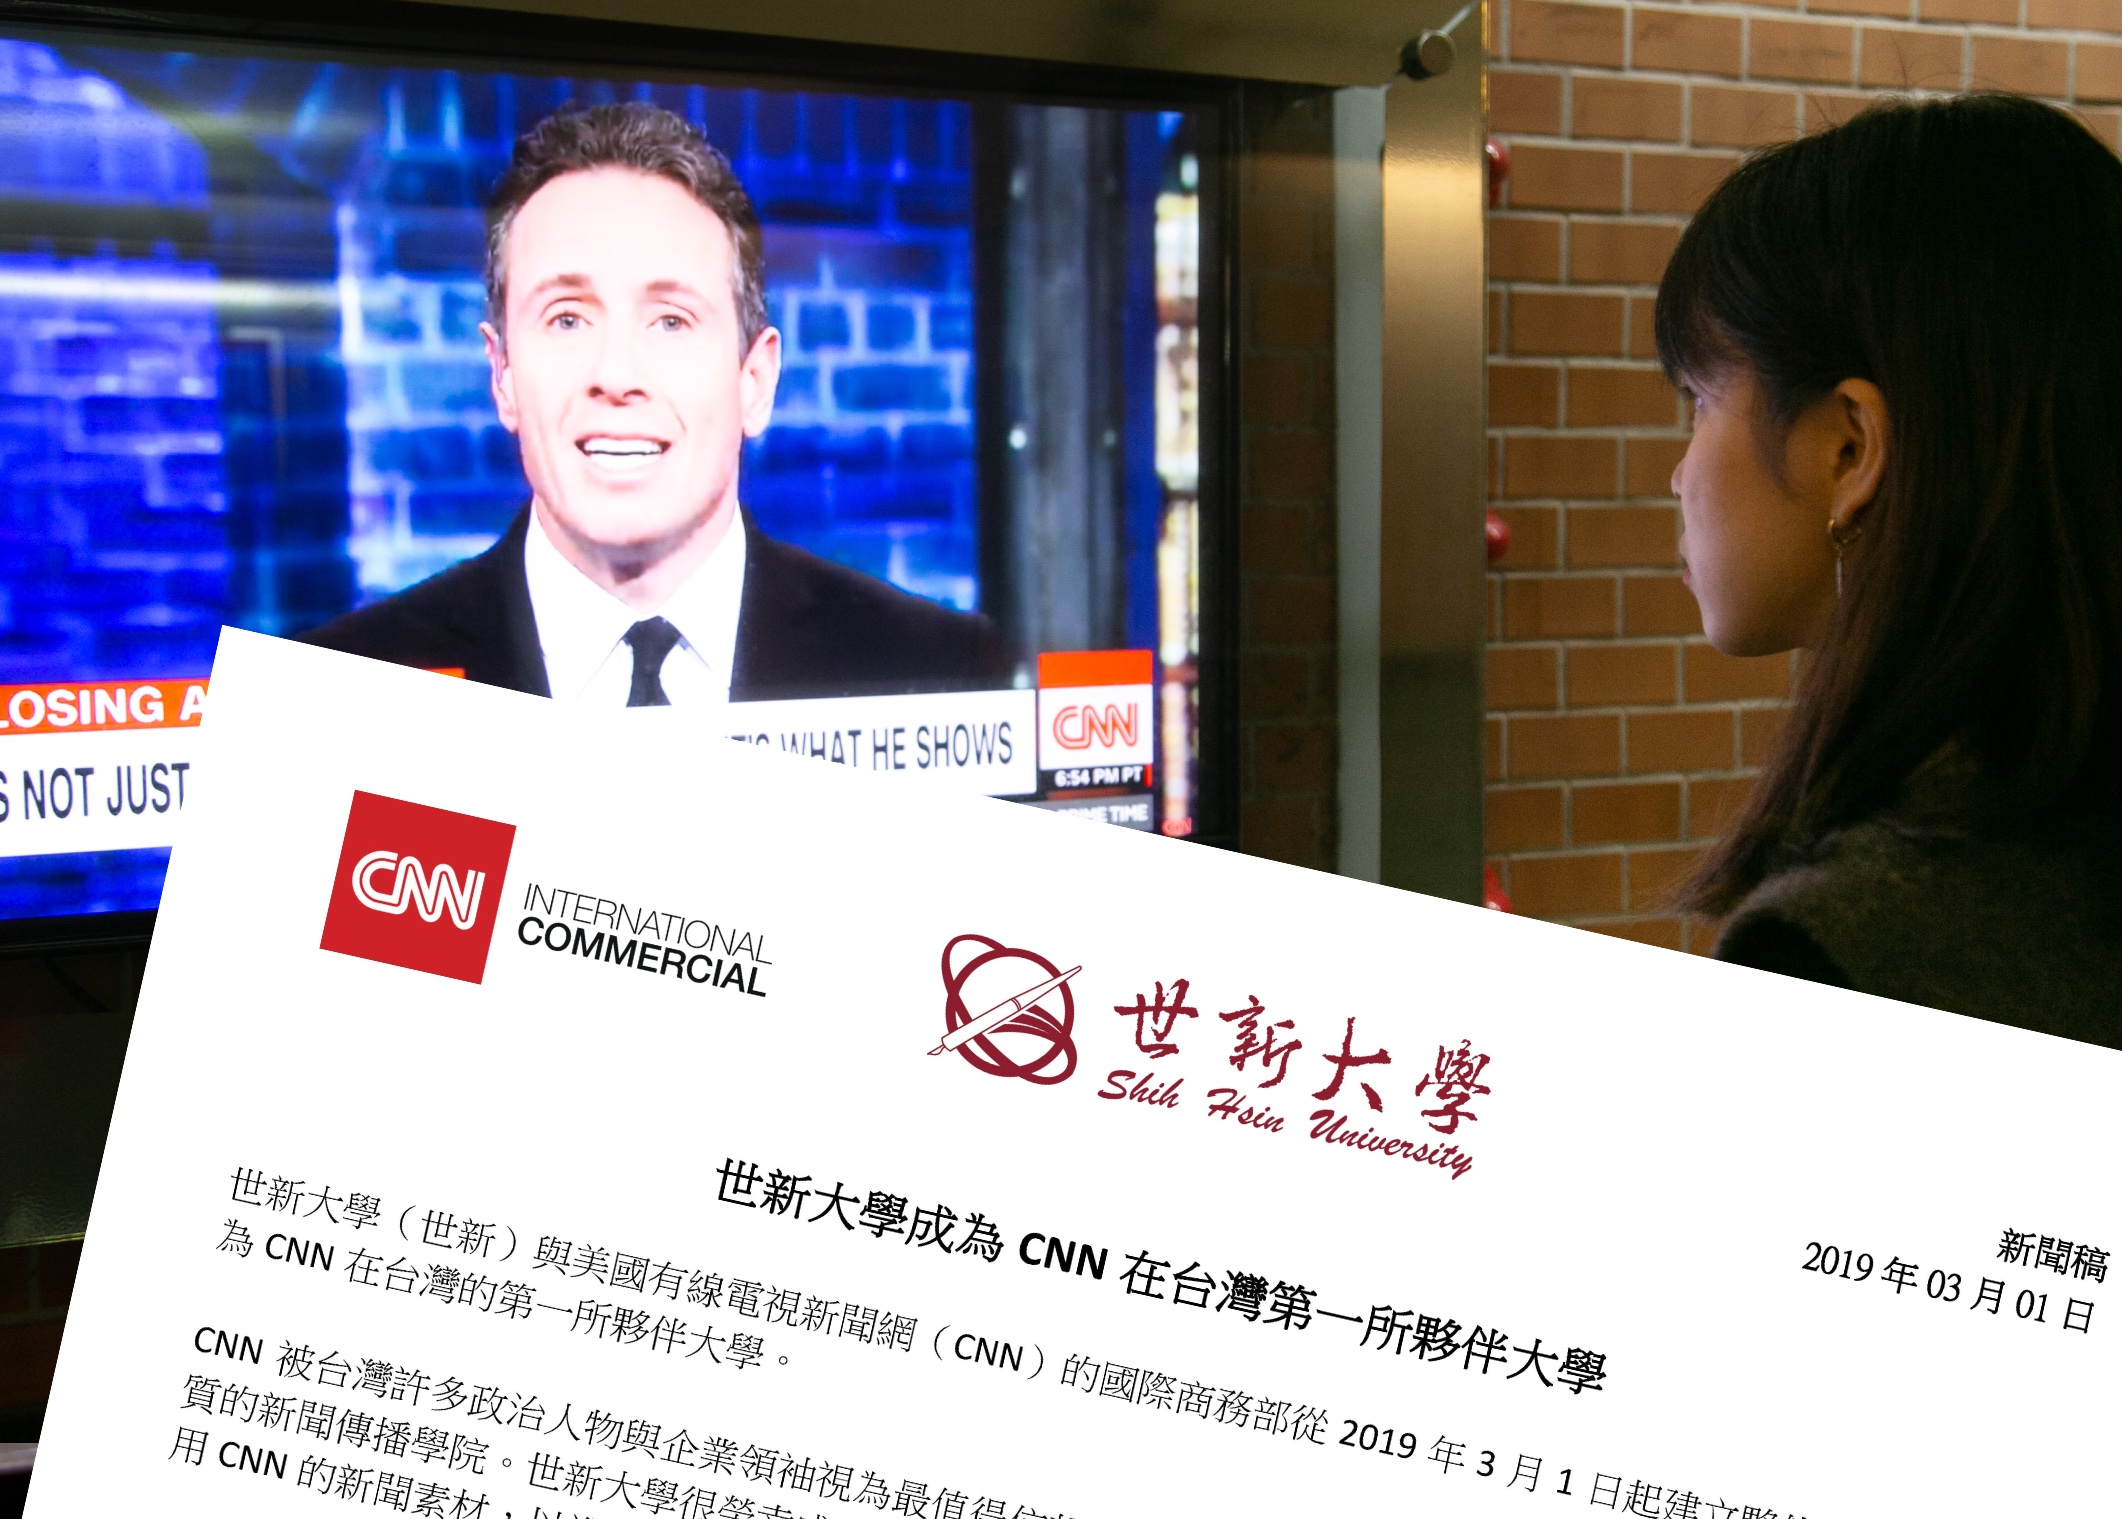 Shih Hsin University, the First Partner University of CNN in Taiwan